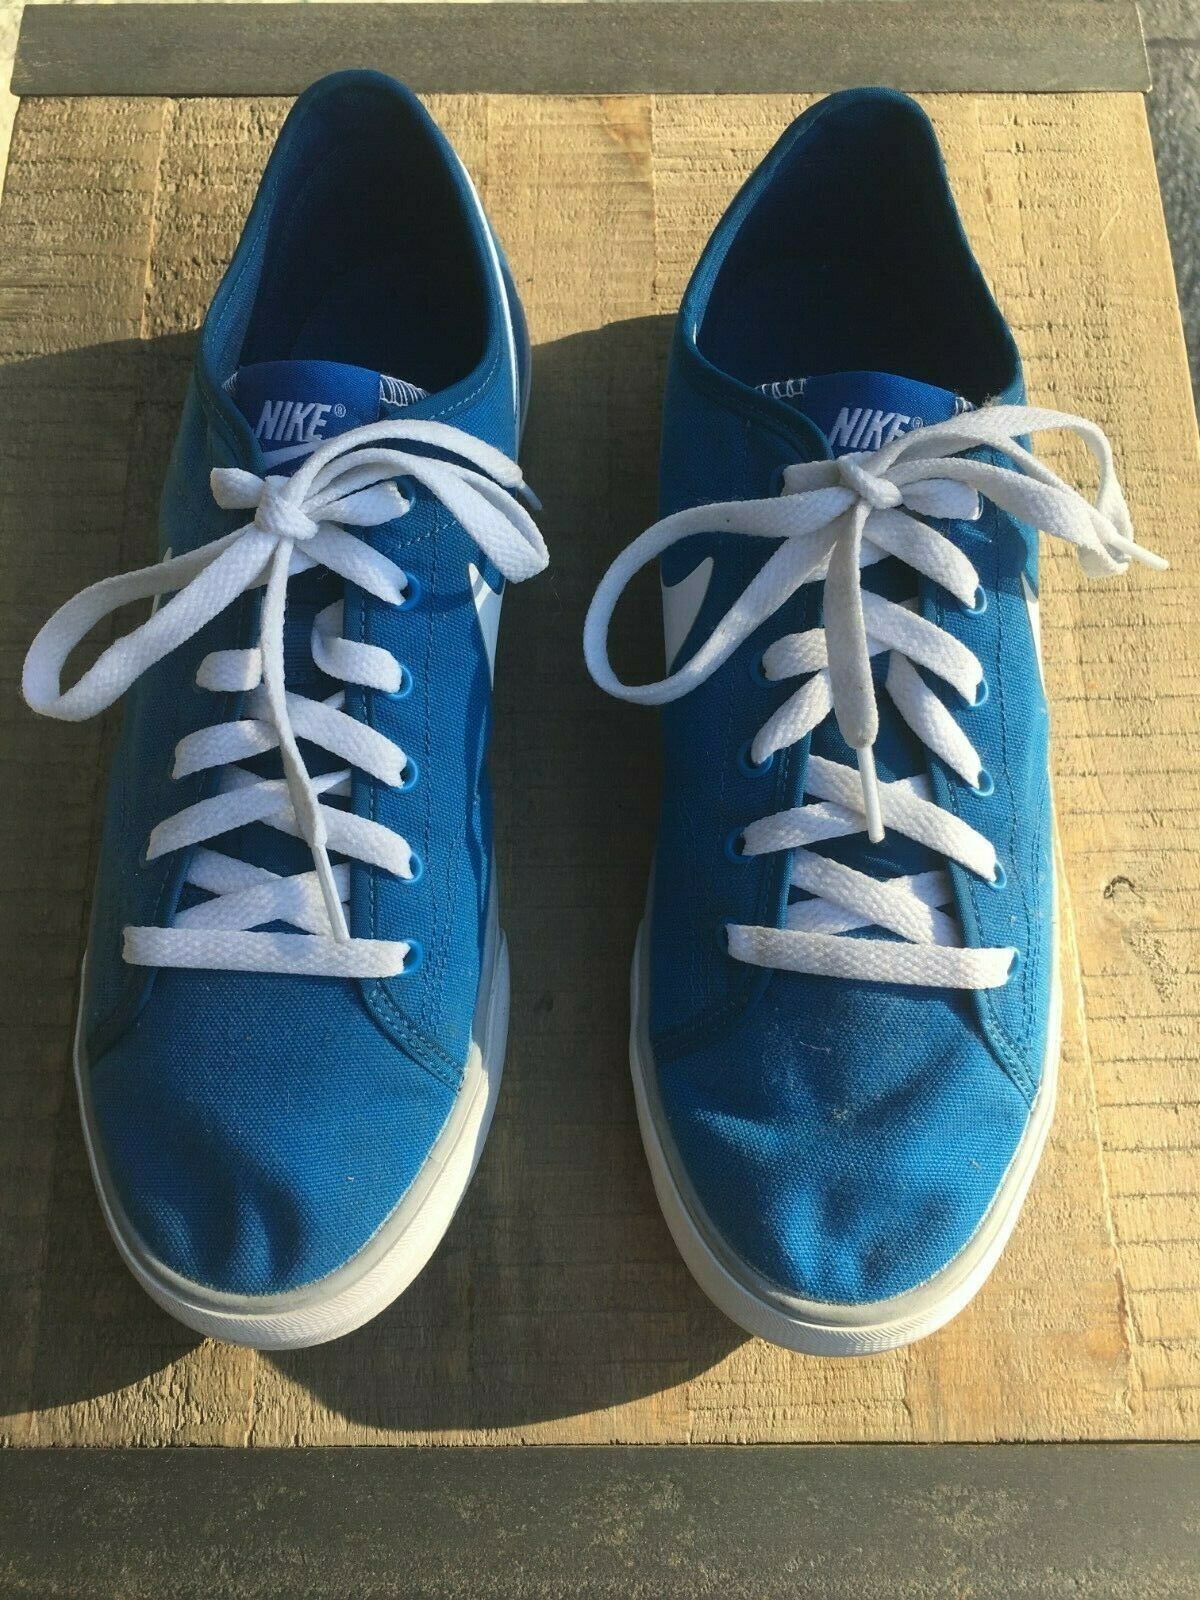 Nike Primo Court bluee And White Men's Athletic shoes Size 10 U.S.